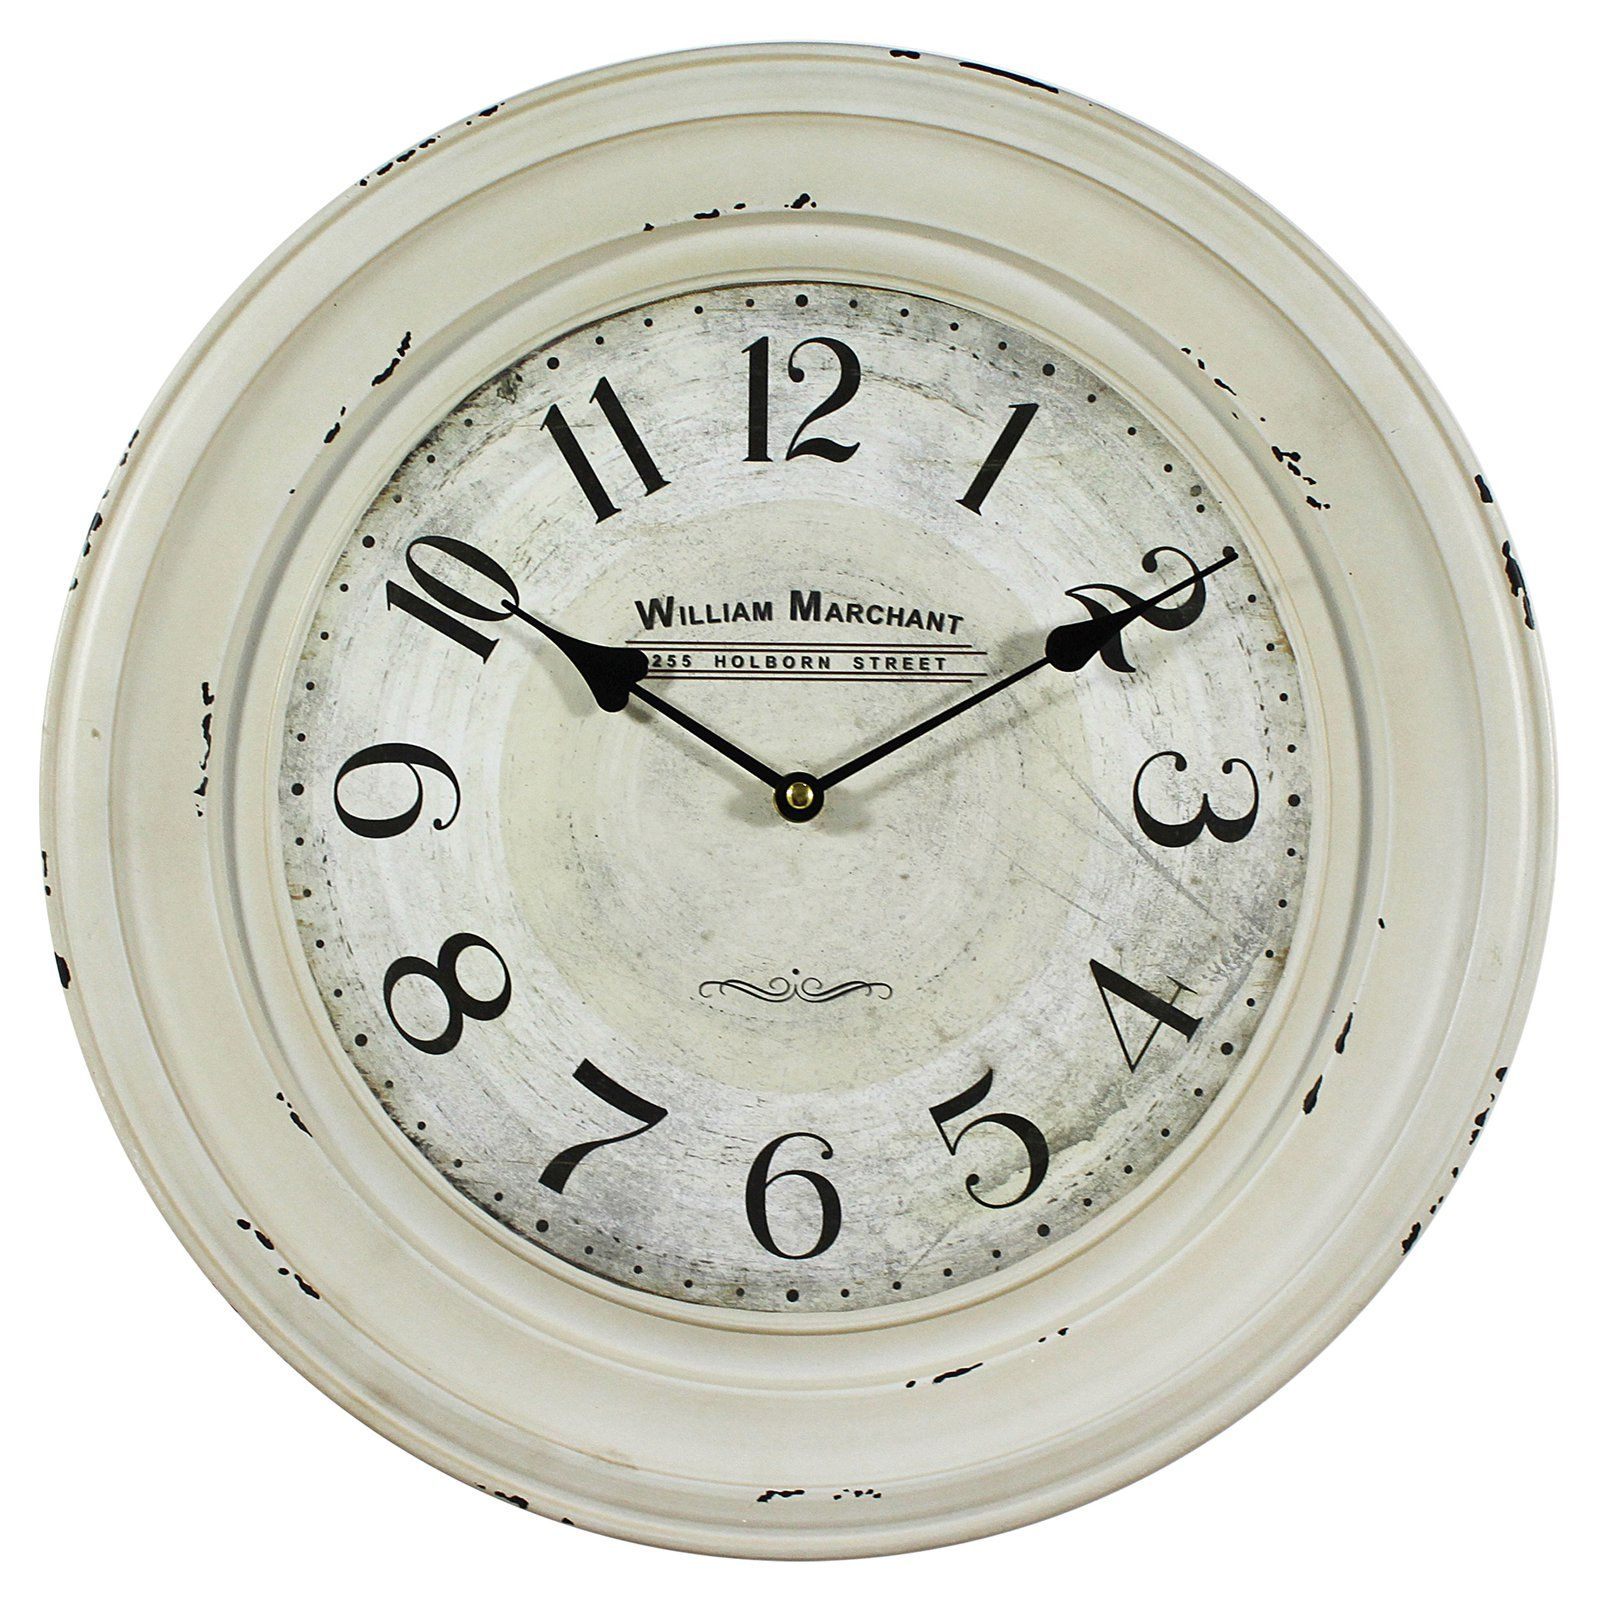 William Marchant 16 In Wall Clock Ivory White Wall Clocks Wall Clock Vintage Wall Clock